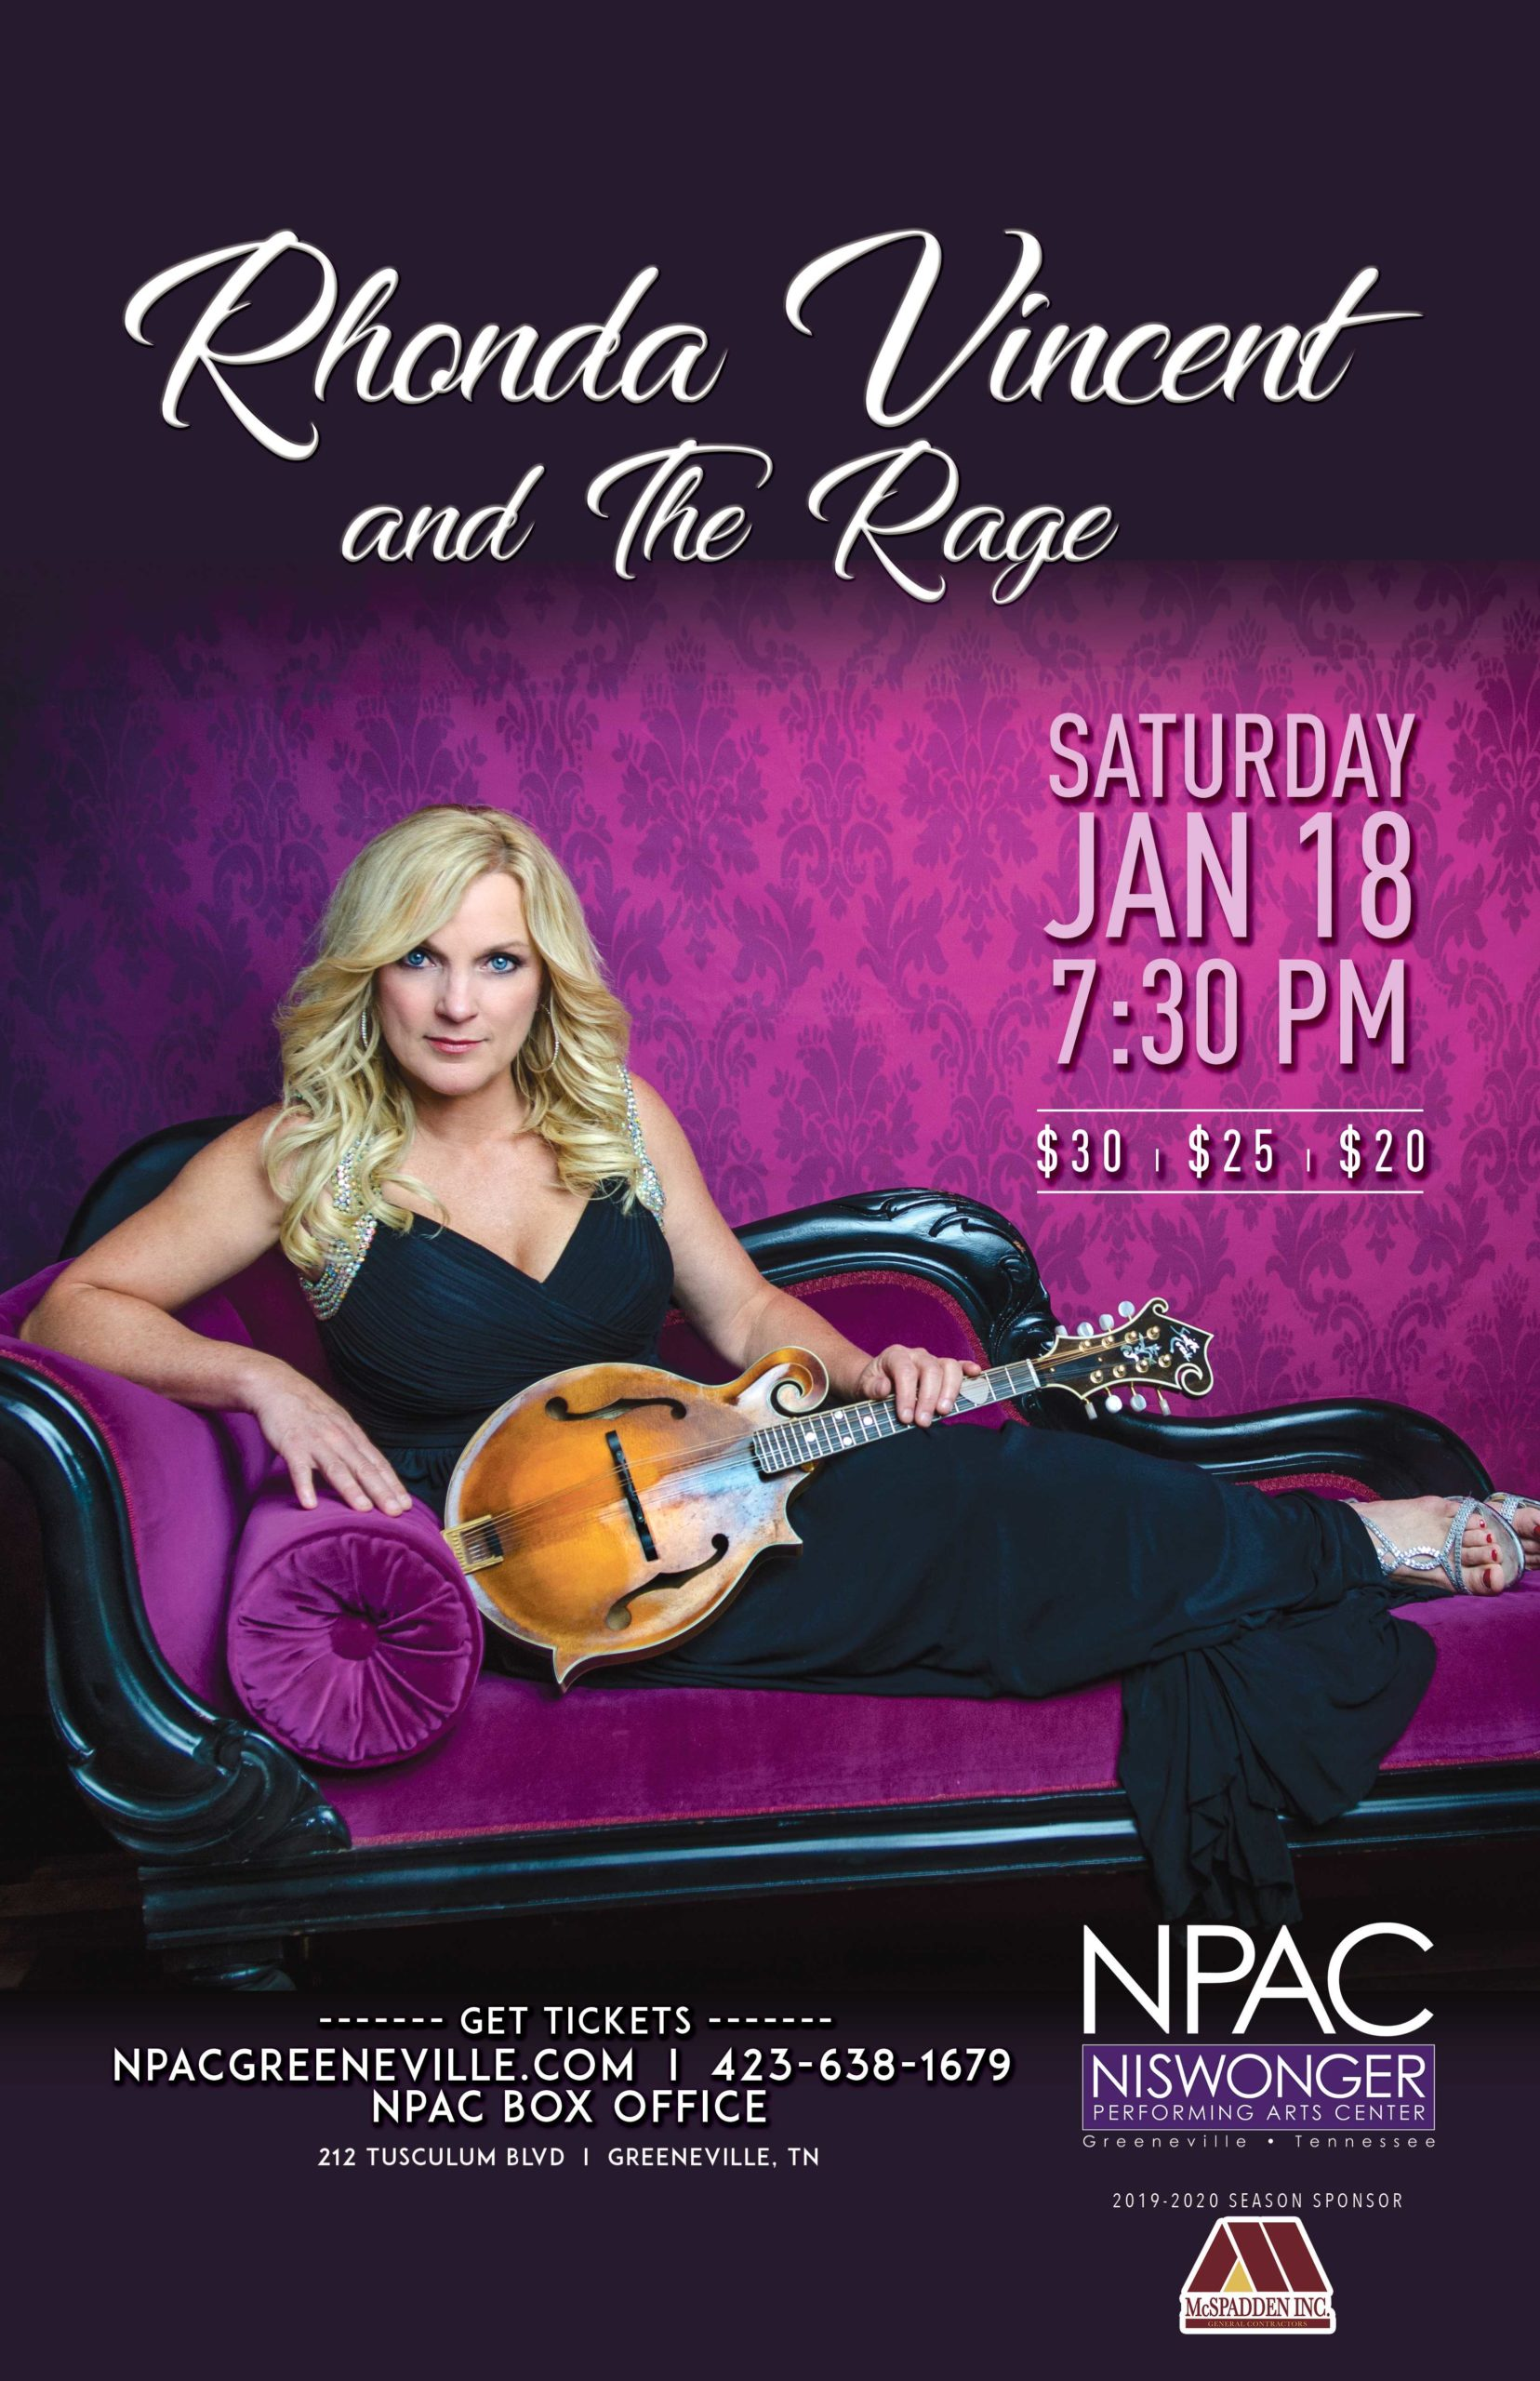 Rhonda Vincent and the Rage at Niswonger Performing Arts Center in Greenville, TN, performance poster